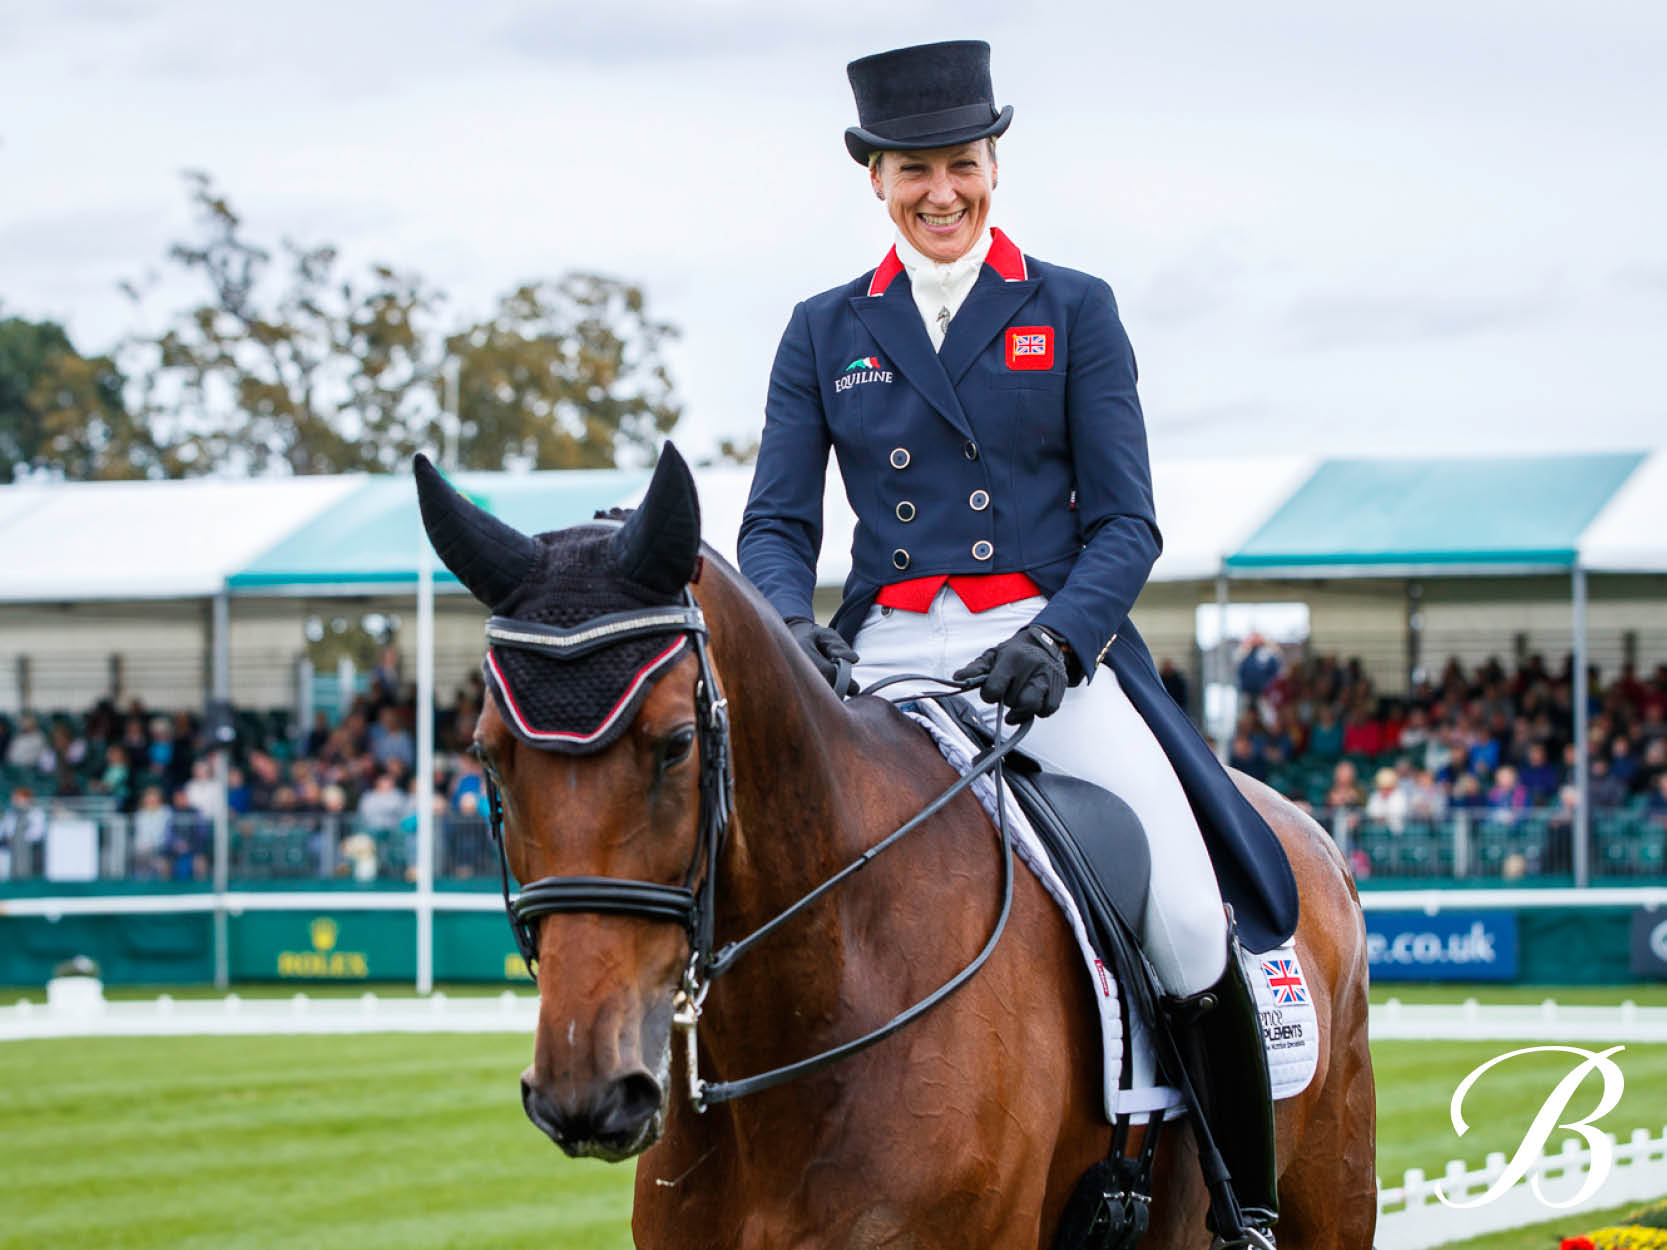 What did CCI5* eventer Sarah Bullimore say about the Bates Victrix?